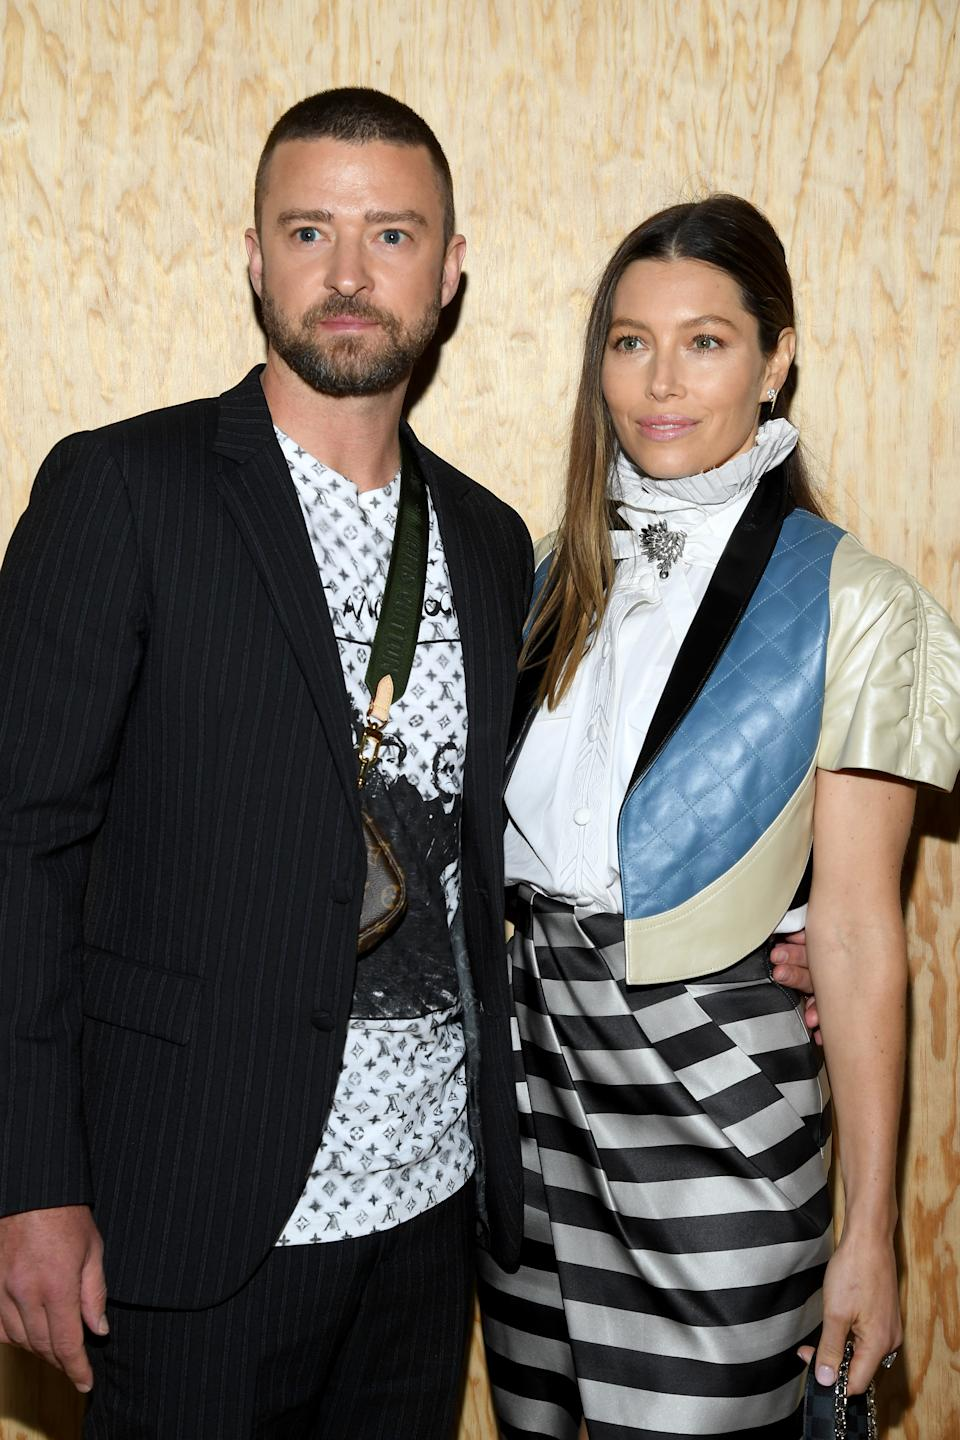 PARIS, FRANCE - OCTOBER 01: Justin Timberlake and Jessica Biel attend the Louis Vuitton Womenswear Spring/Summer 2020 show as part of Paris Fashion Week on October 01, 2019 in Paris, France. (Photo by Pascal Le Segretain/Getty Images)